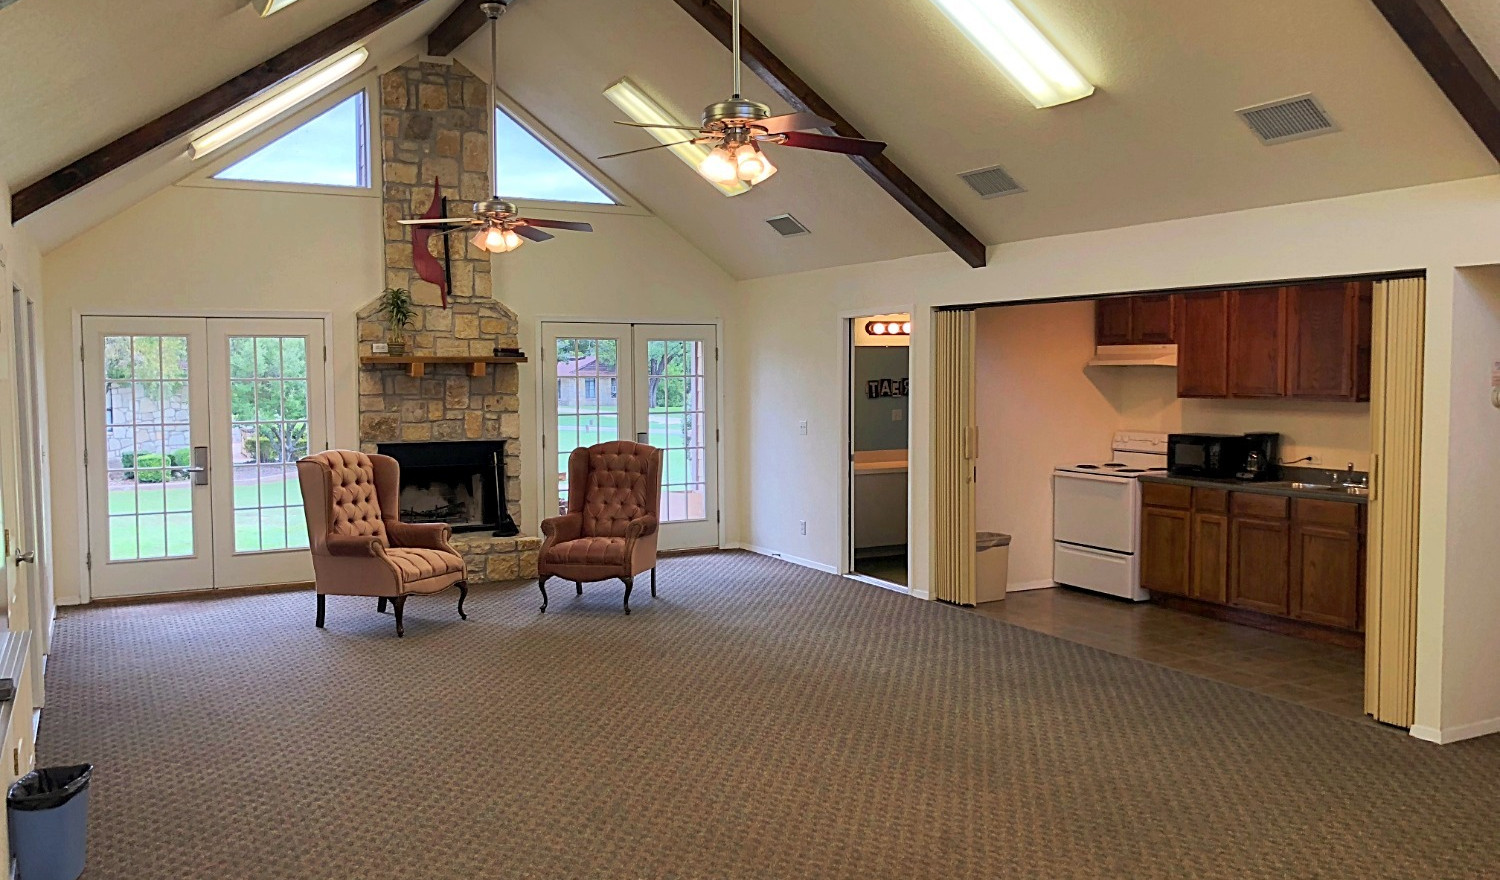 Middle Shared Space | Glen Lake Camp and Retreat Center